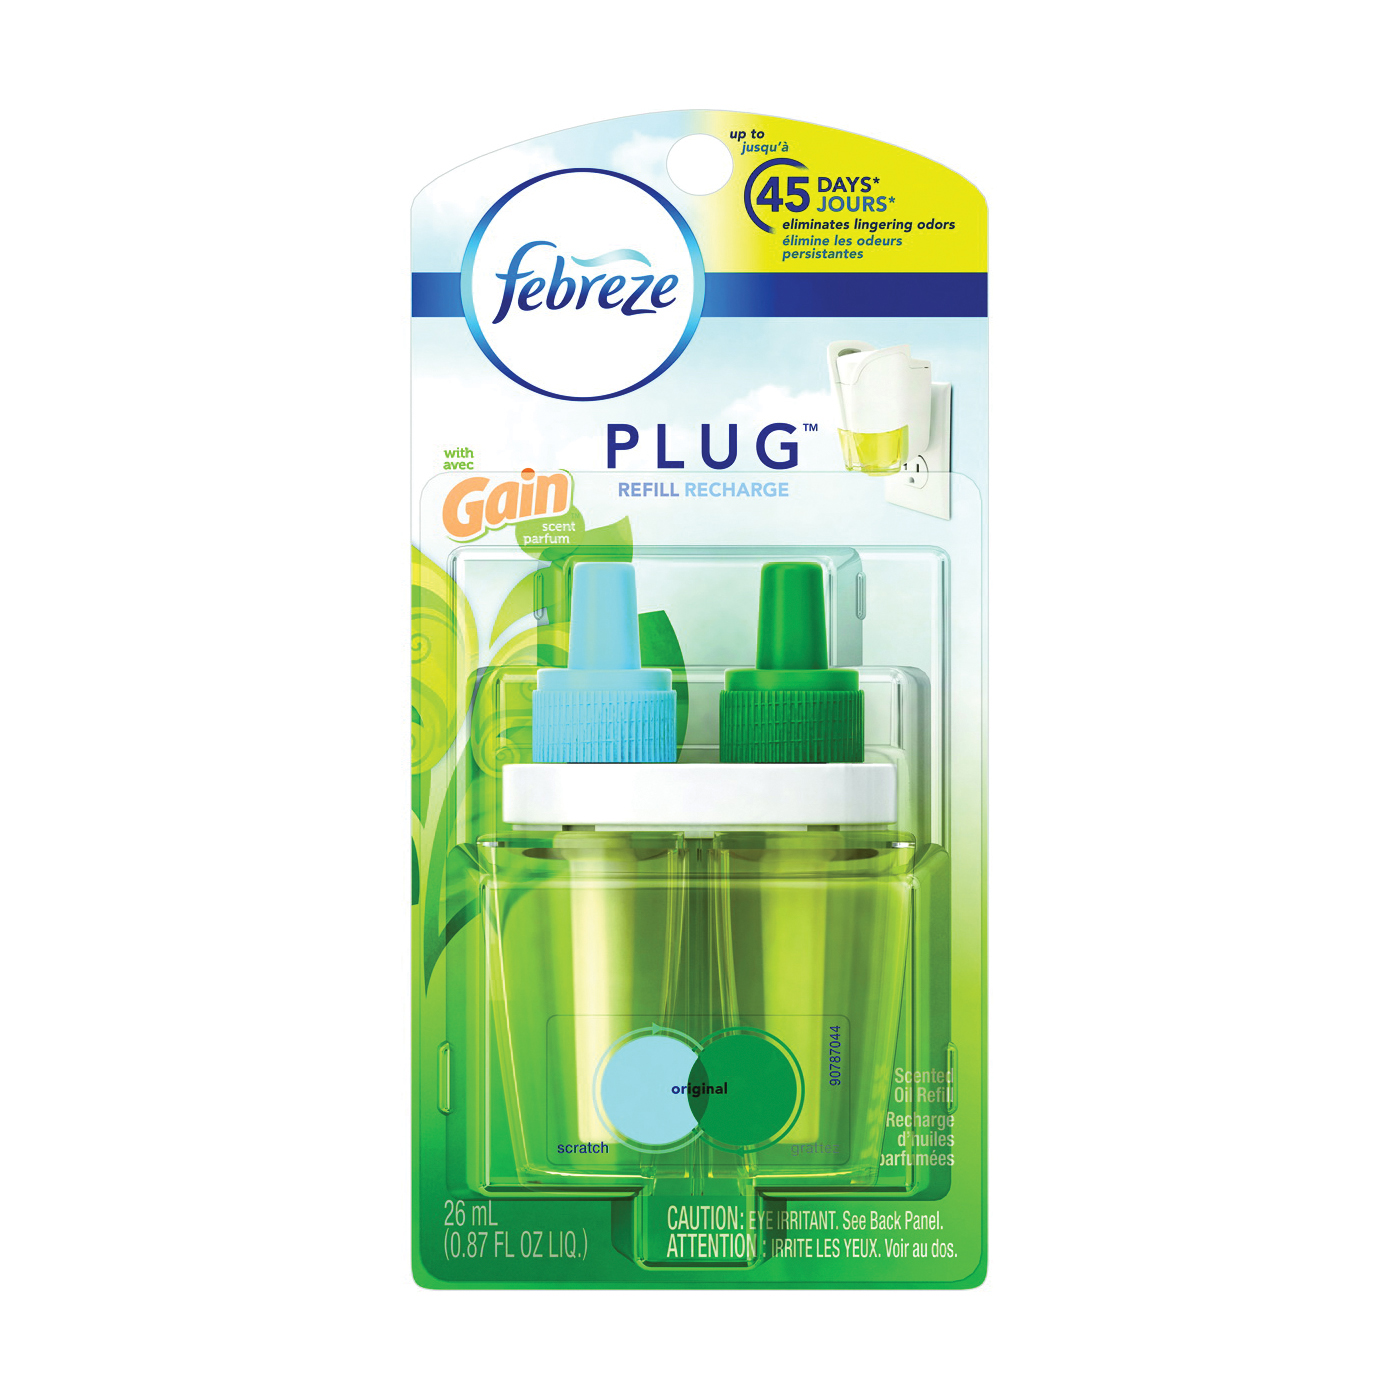 Picture of febreze 32008 Noticeables Air Freshener, 0.87 oz Package, Refill, Scented